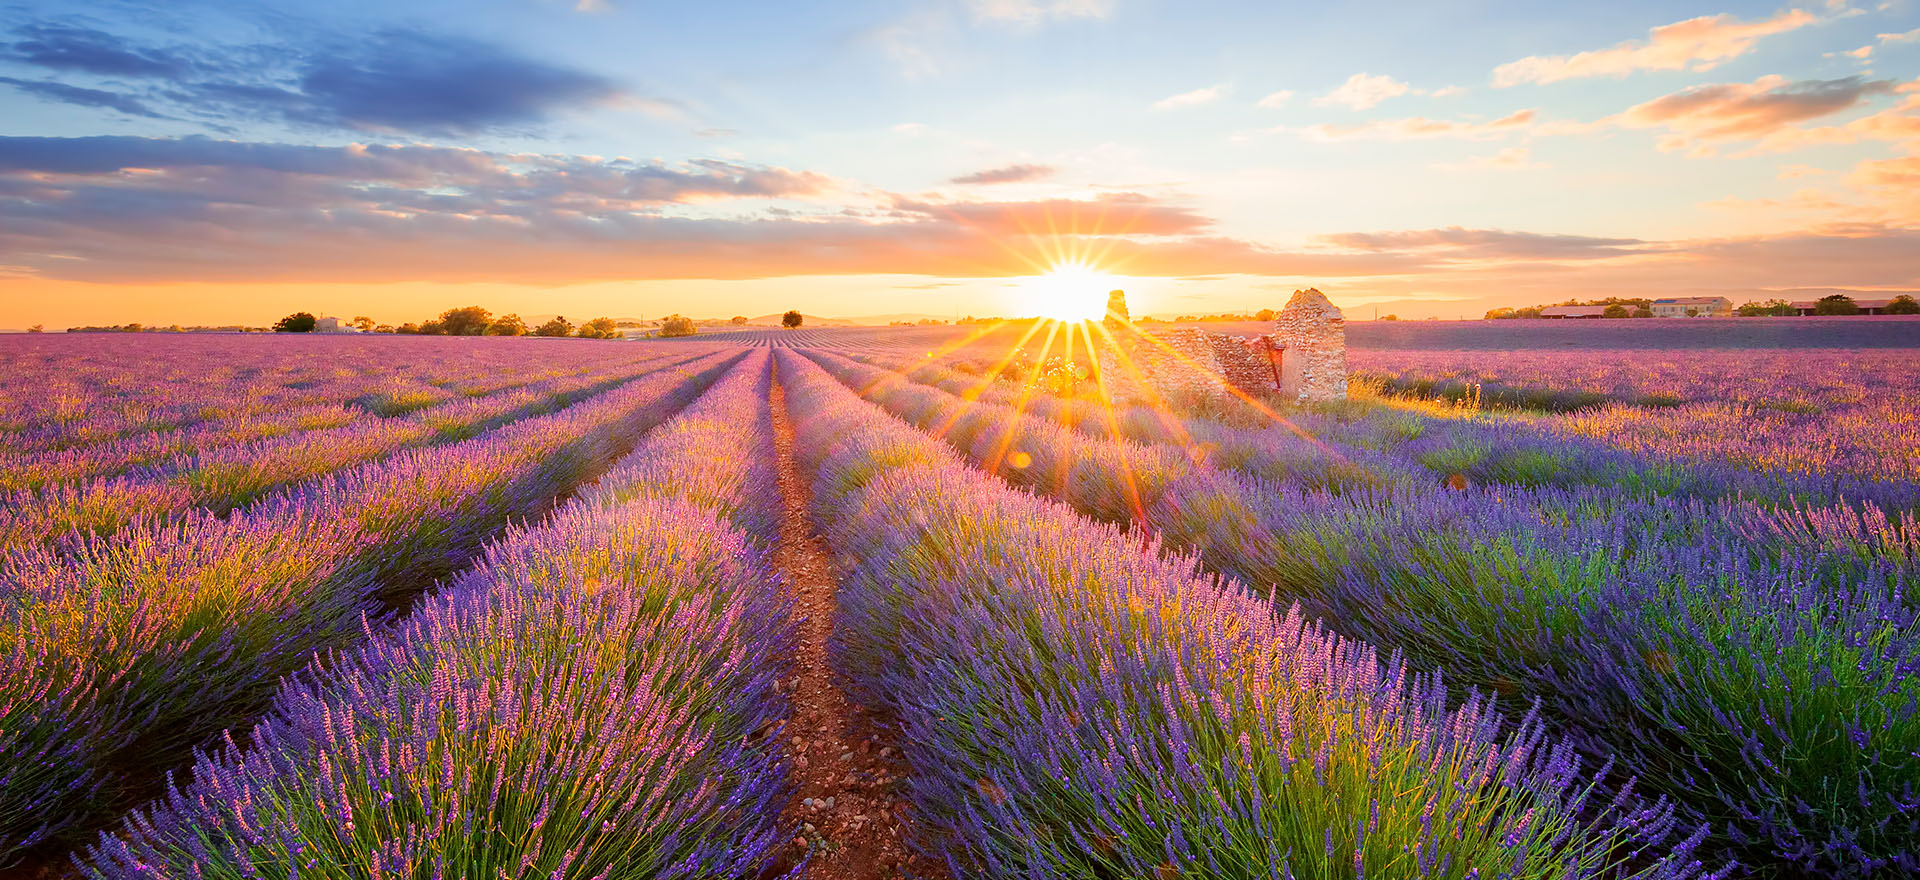 Sunset over the Lavender fields in Provence